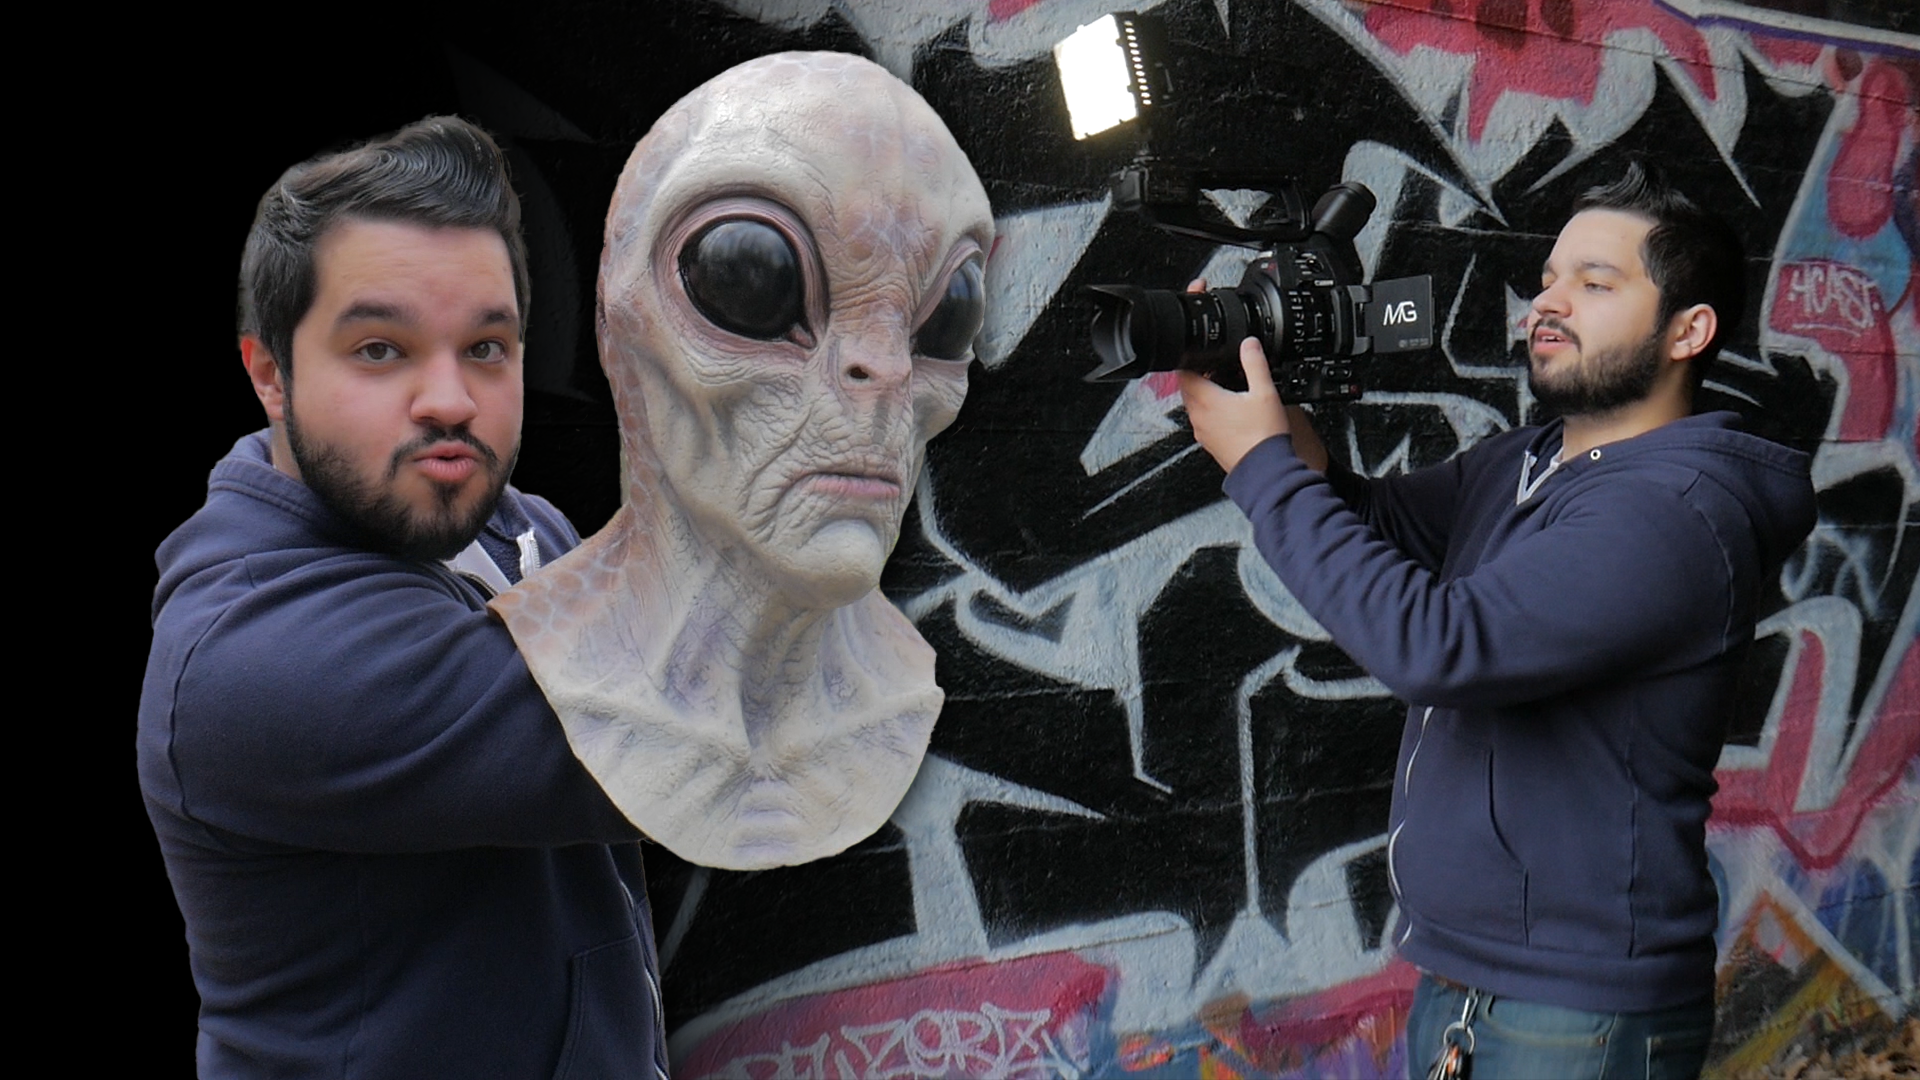 Images of Mitchell Gamache with a person in an alien mask and shooting video with a large cam